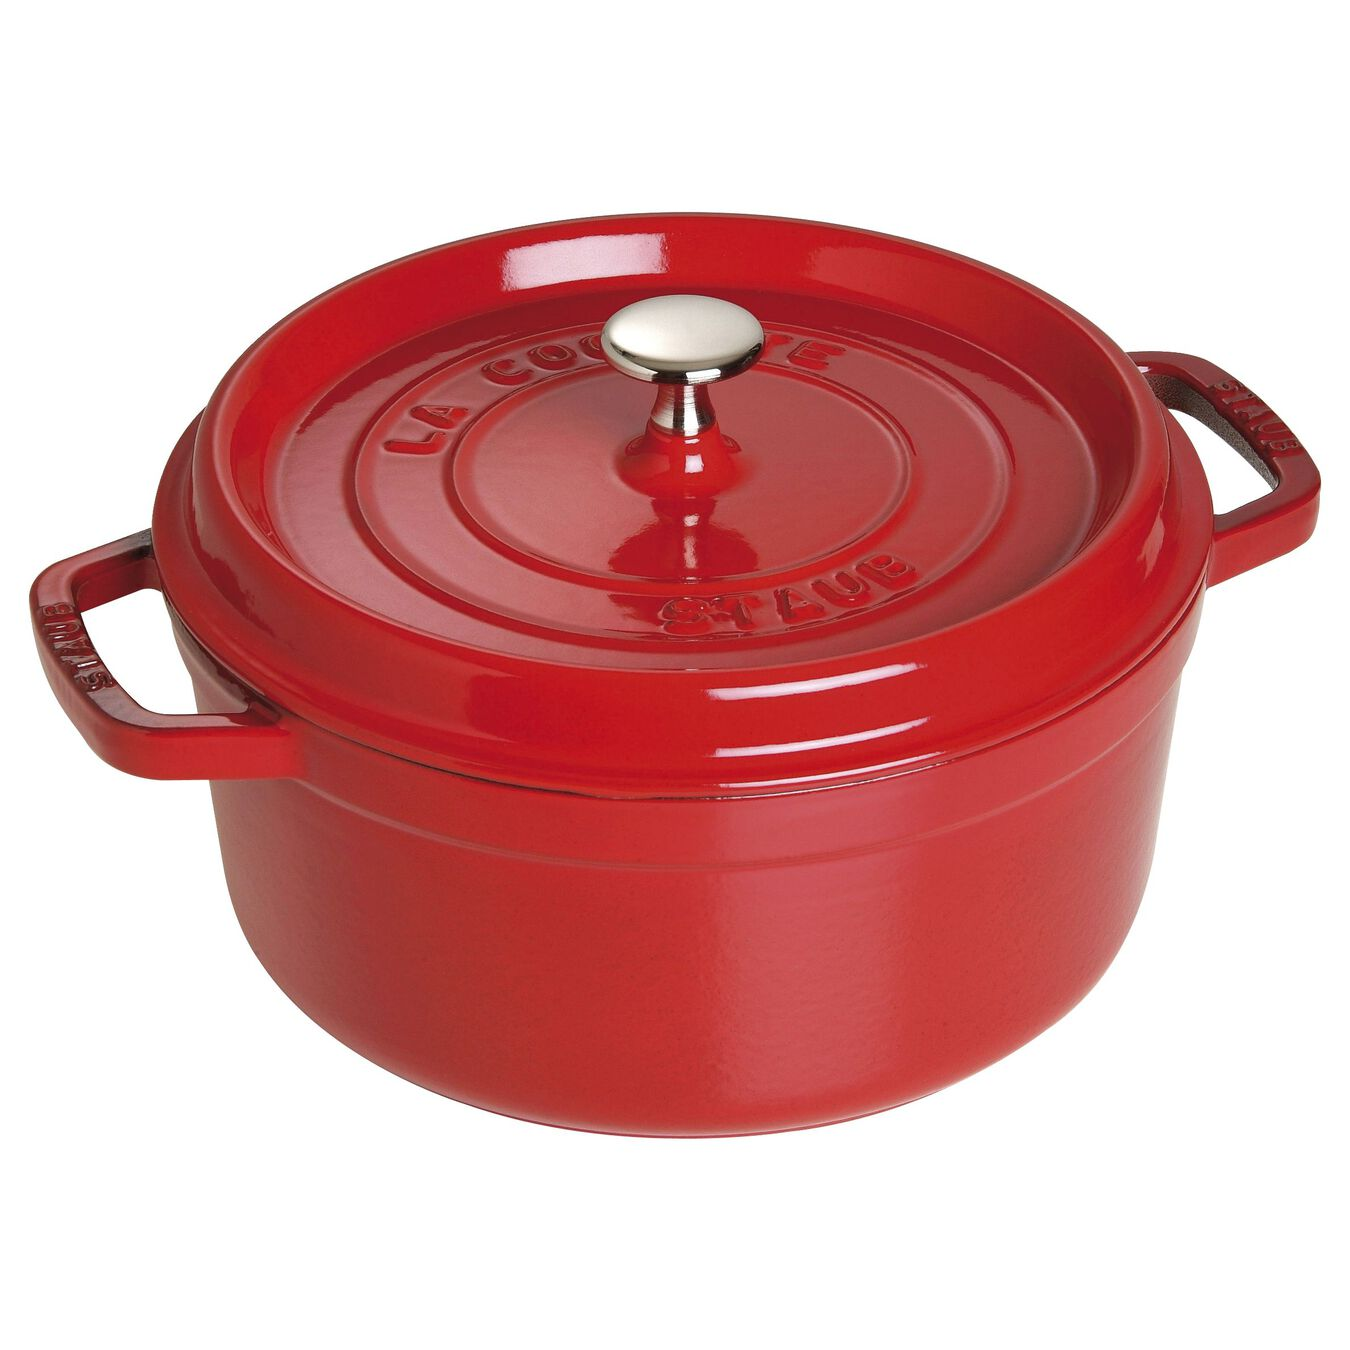 4-qt round cocotte - cherry - visual imperfections,,large 1